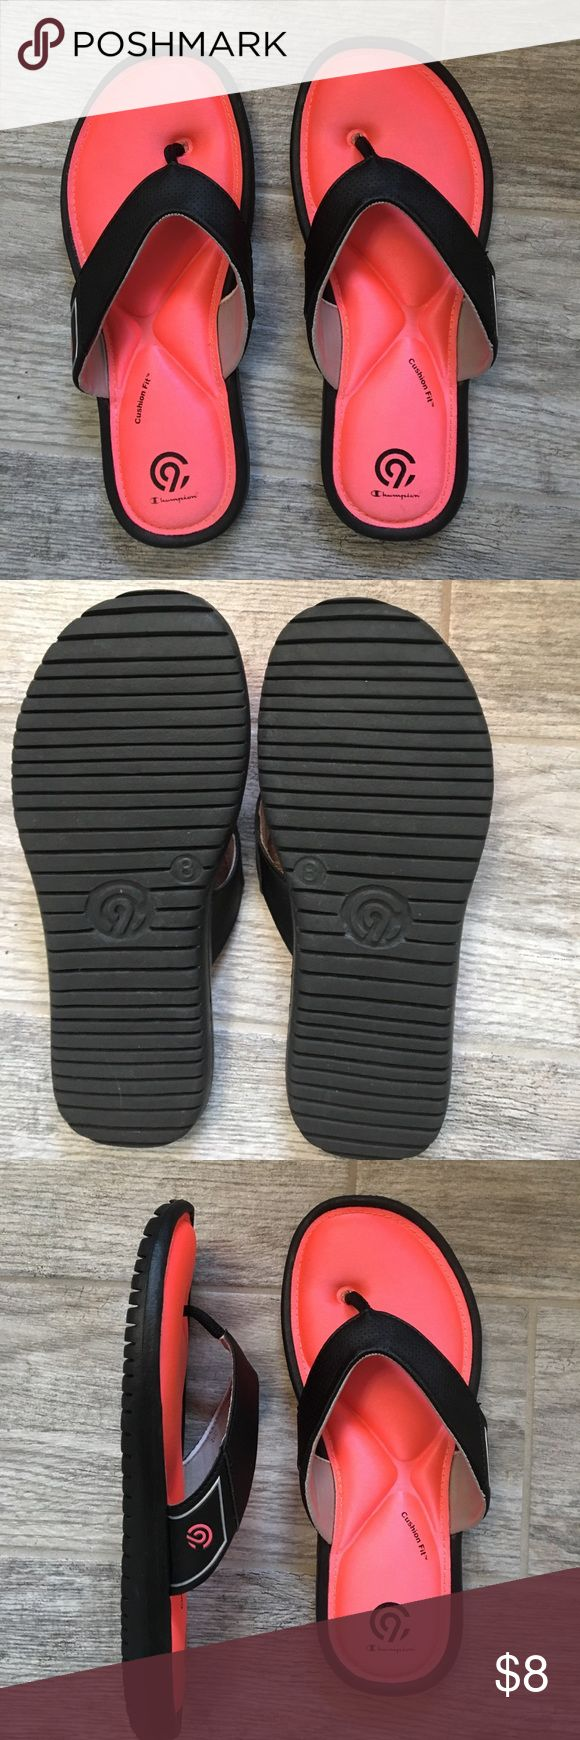 Champion cushioned flip flops VERY cushiony memory foam flip flops!   Feels great!   Worn once but don't fit me... happy to pass on to some deserving feet that need some love! ❤️💕 Champion Shoes